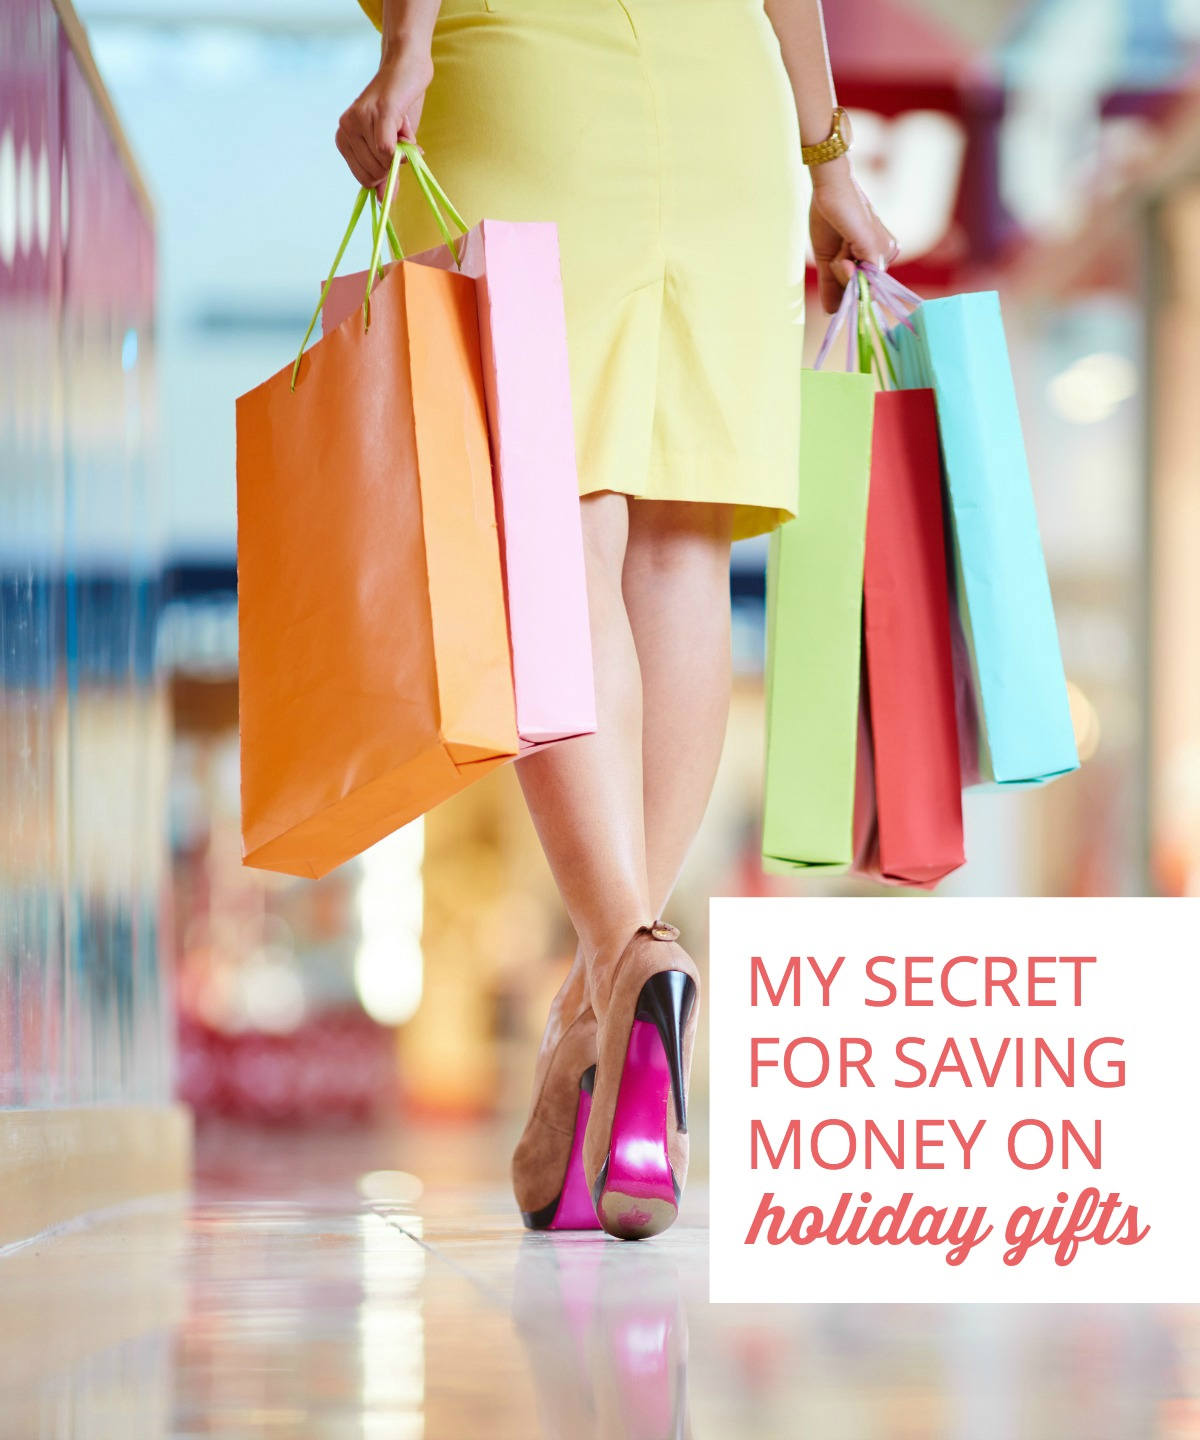 Ever wondered how non-Christian families feel at Christmas time in the US? Find out how one Muslim American family began adopting the holiday as part of their cultural transition—plus learn this mom's secret to saving major bucks on holiday gifts!